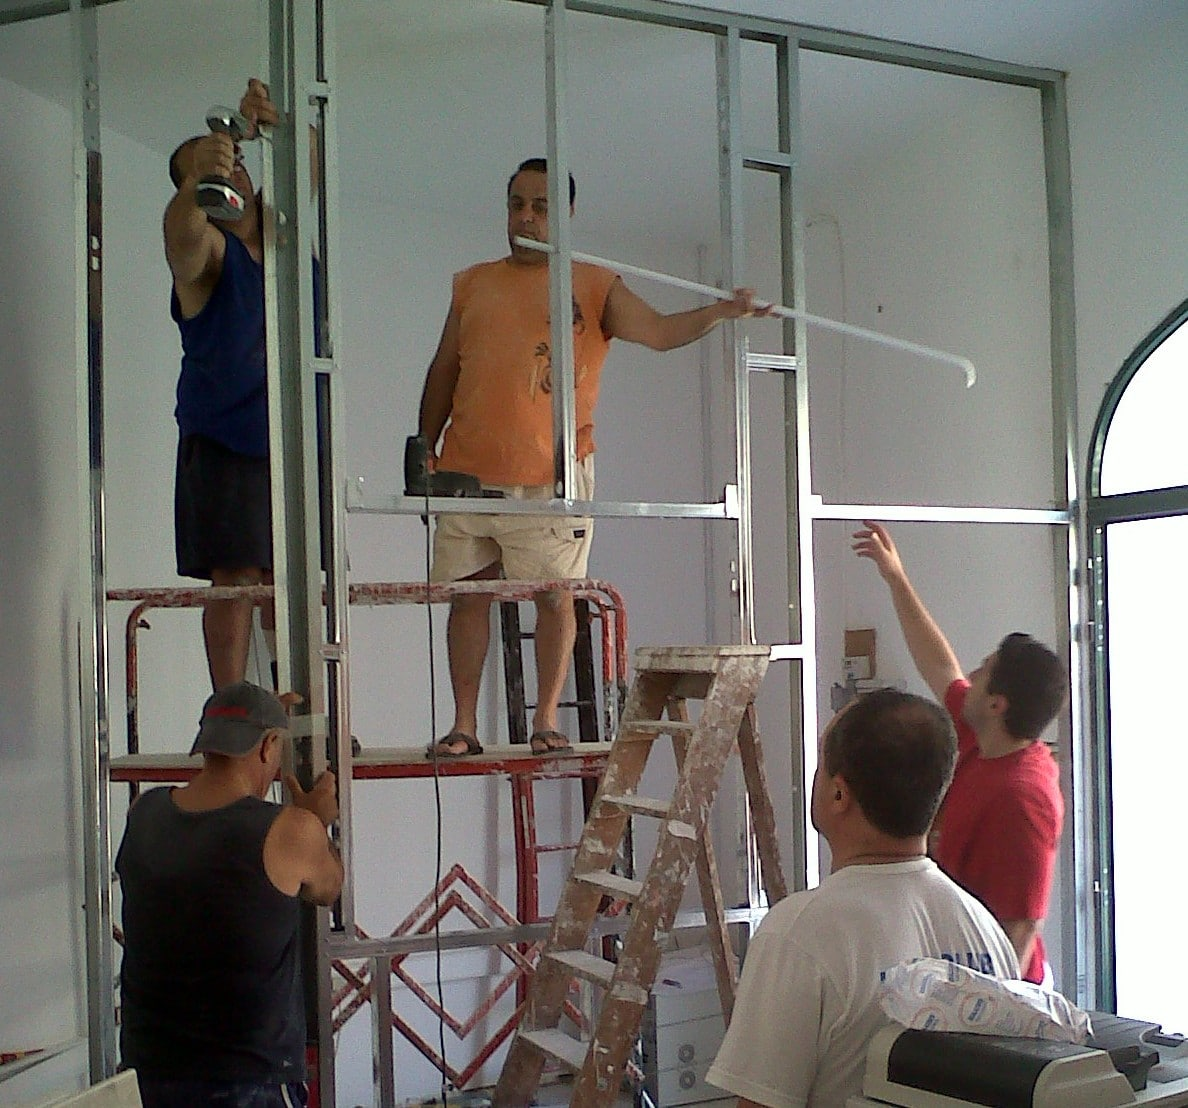 Nectar Group - Voluntary work for Victim Support Malta